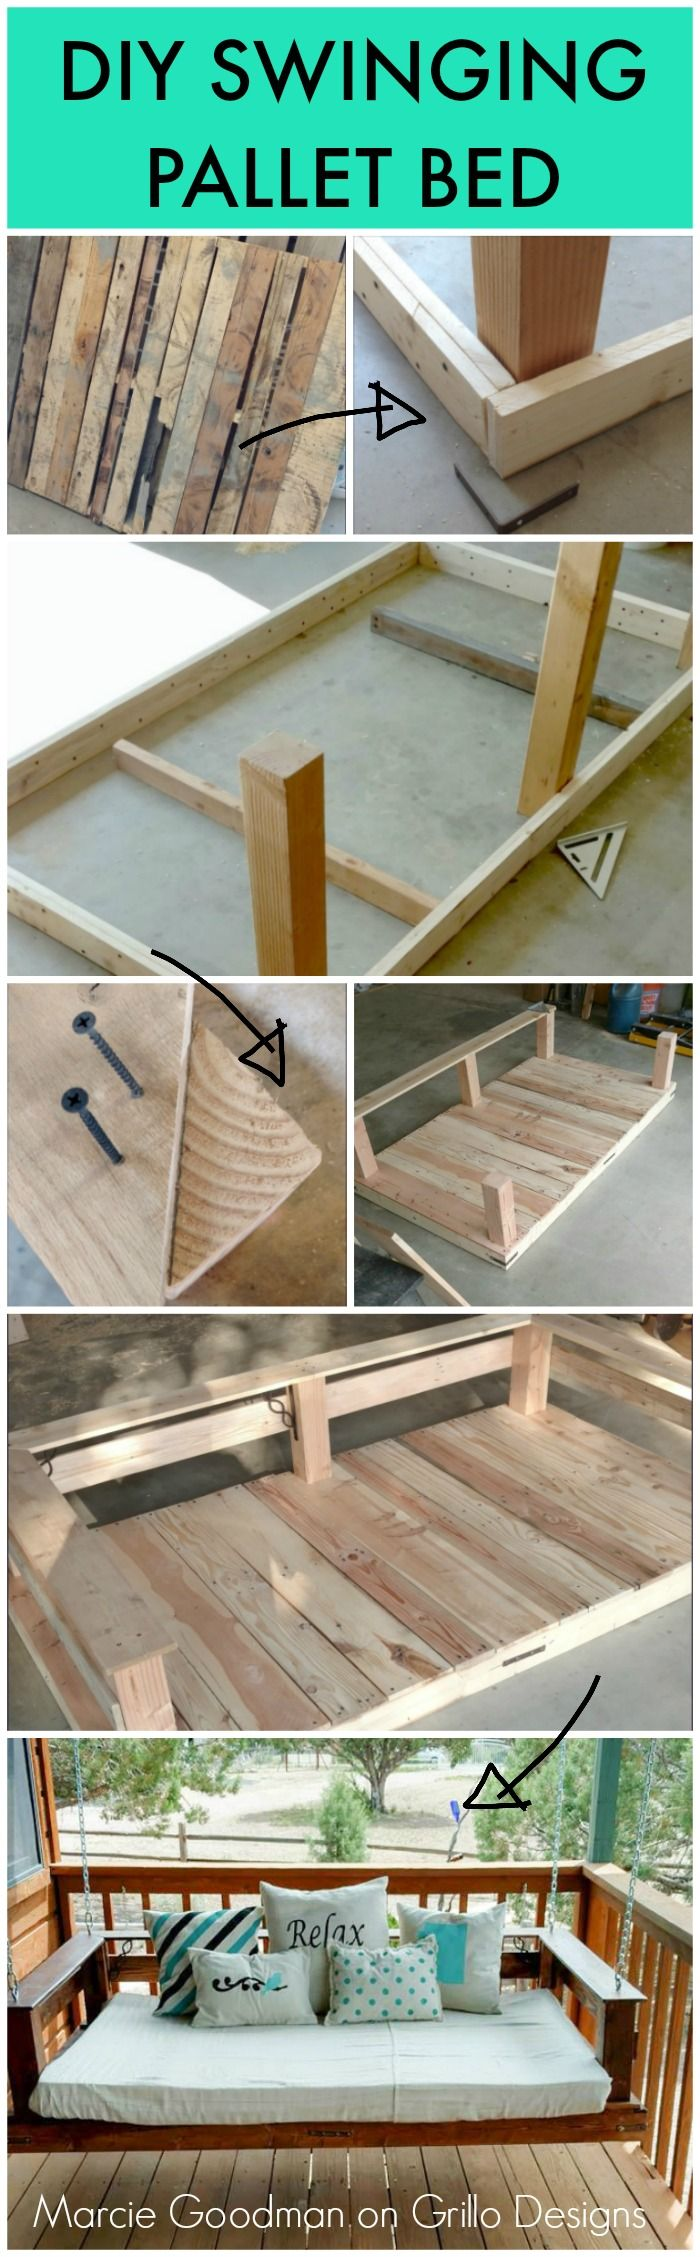 DIY Pallet Swing Bed • Grillo Designs